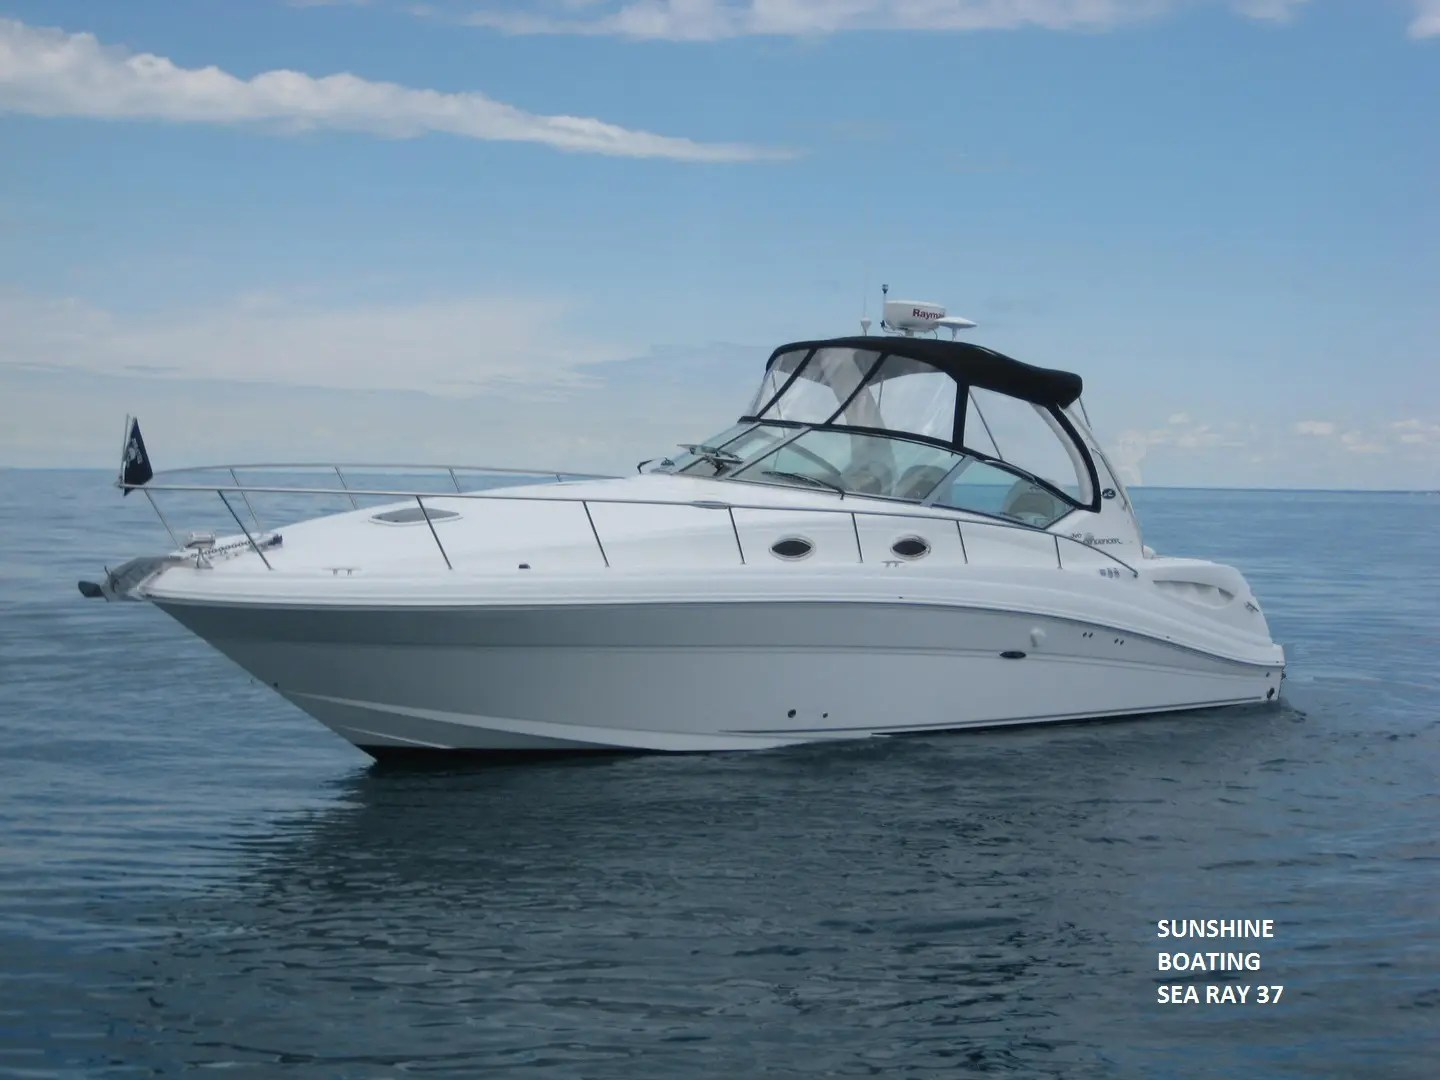 37 Sea Ray Sunshine Boating